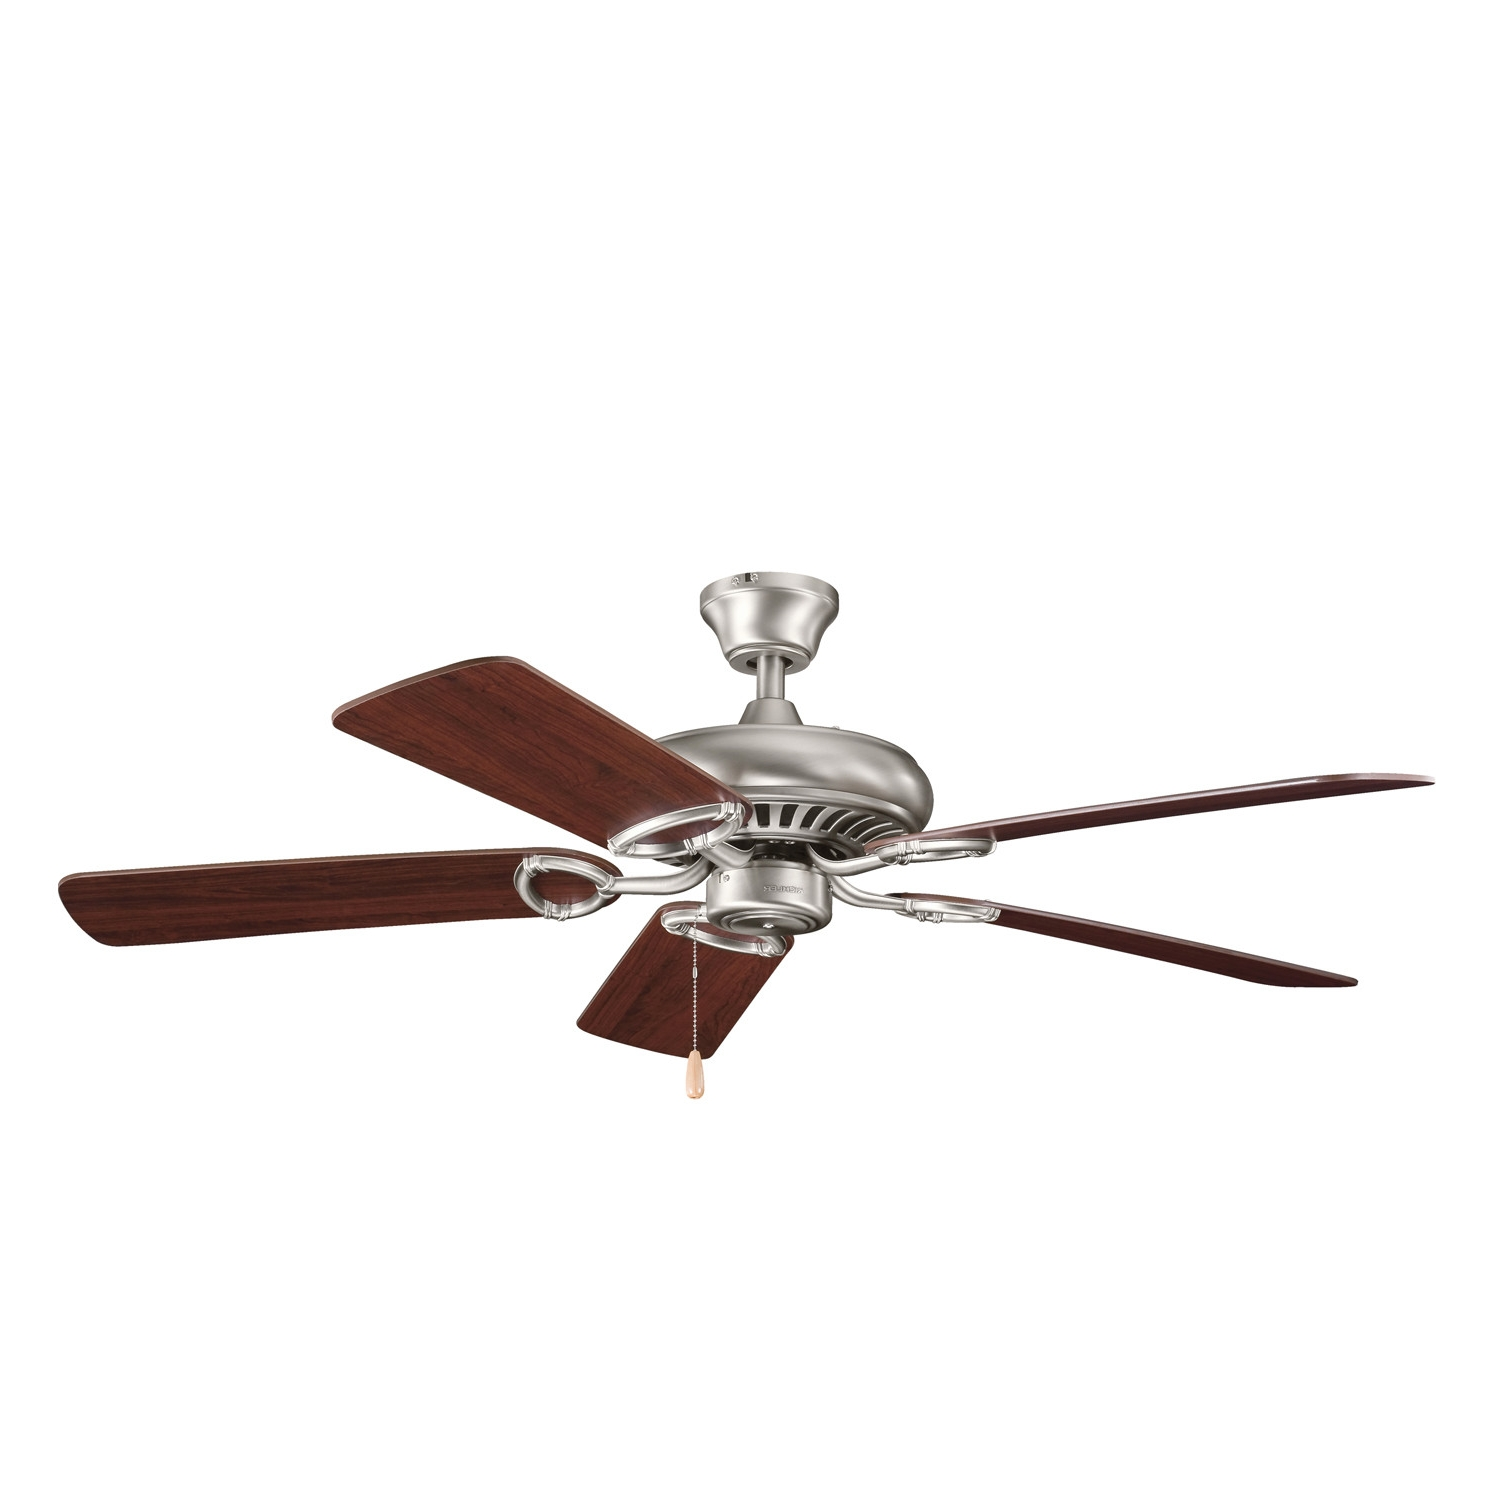 Newest Outdoor Ceiling Fans With Motion Sensor Light With Regard To Flush Mount Outdoor Lighting Motion Sensor (View 6 of 20)